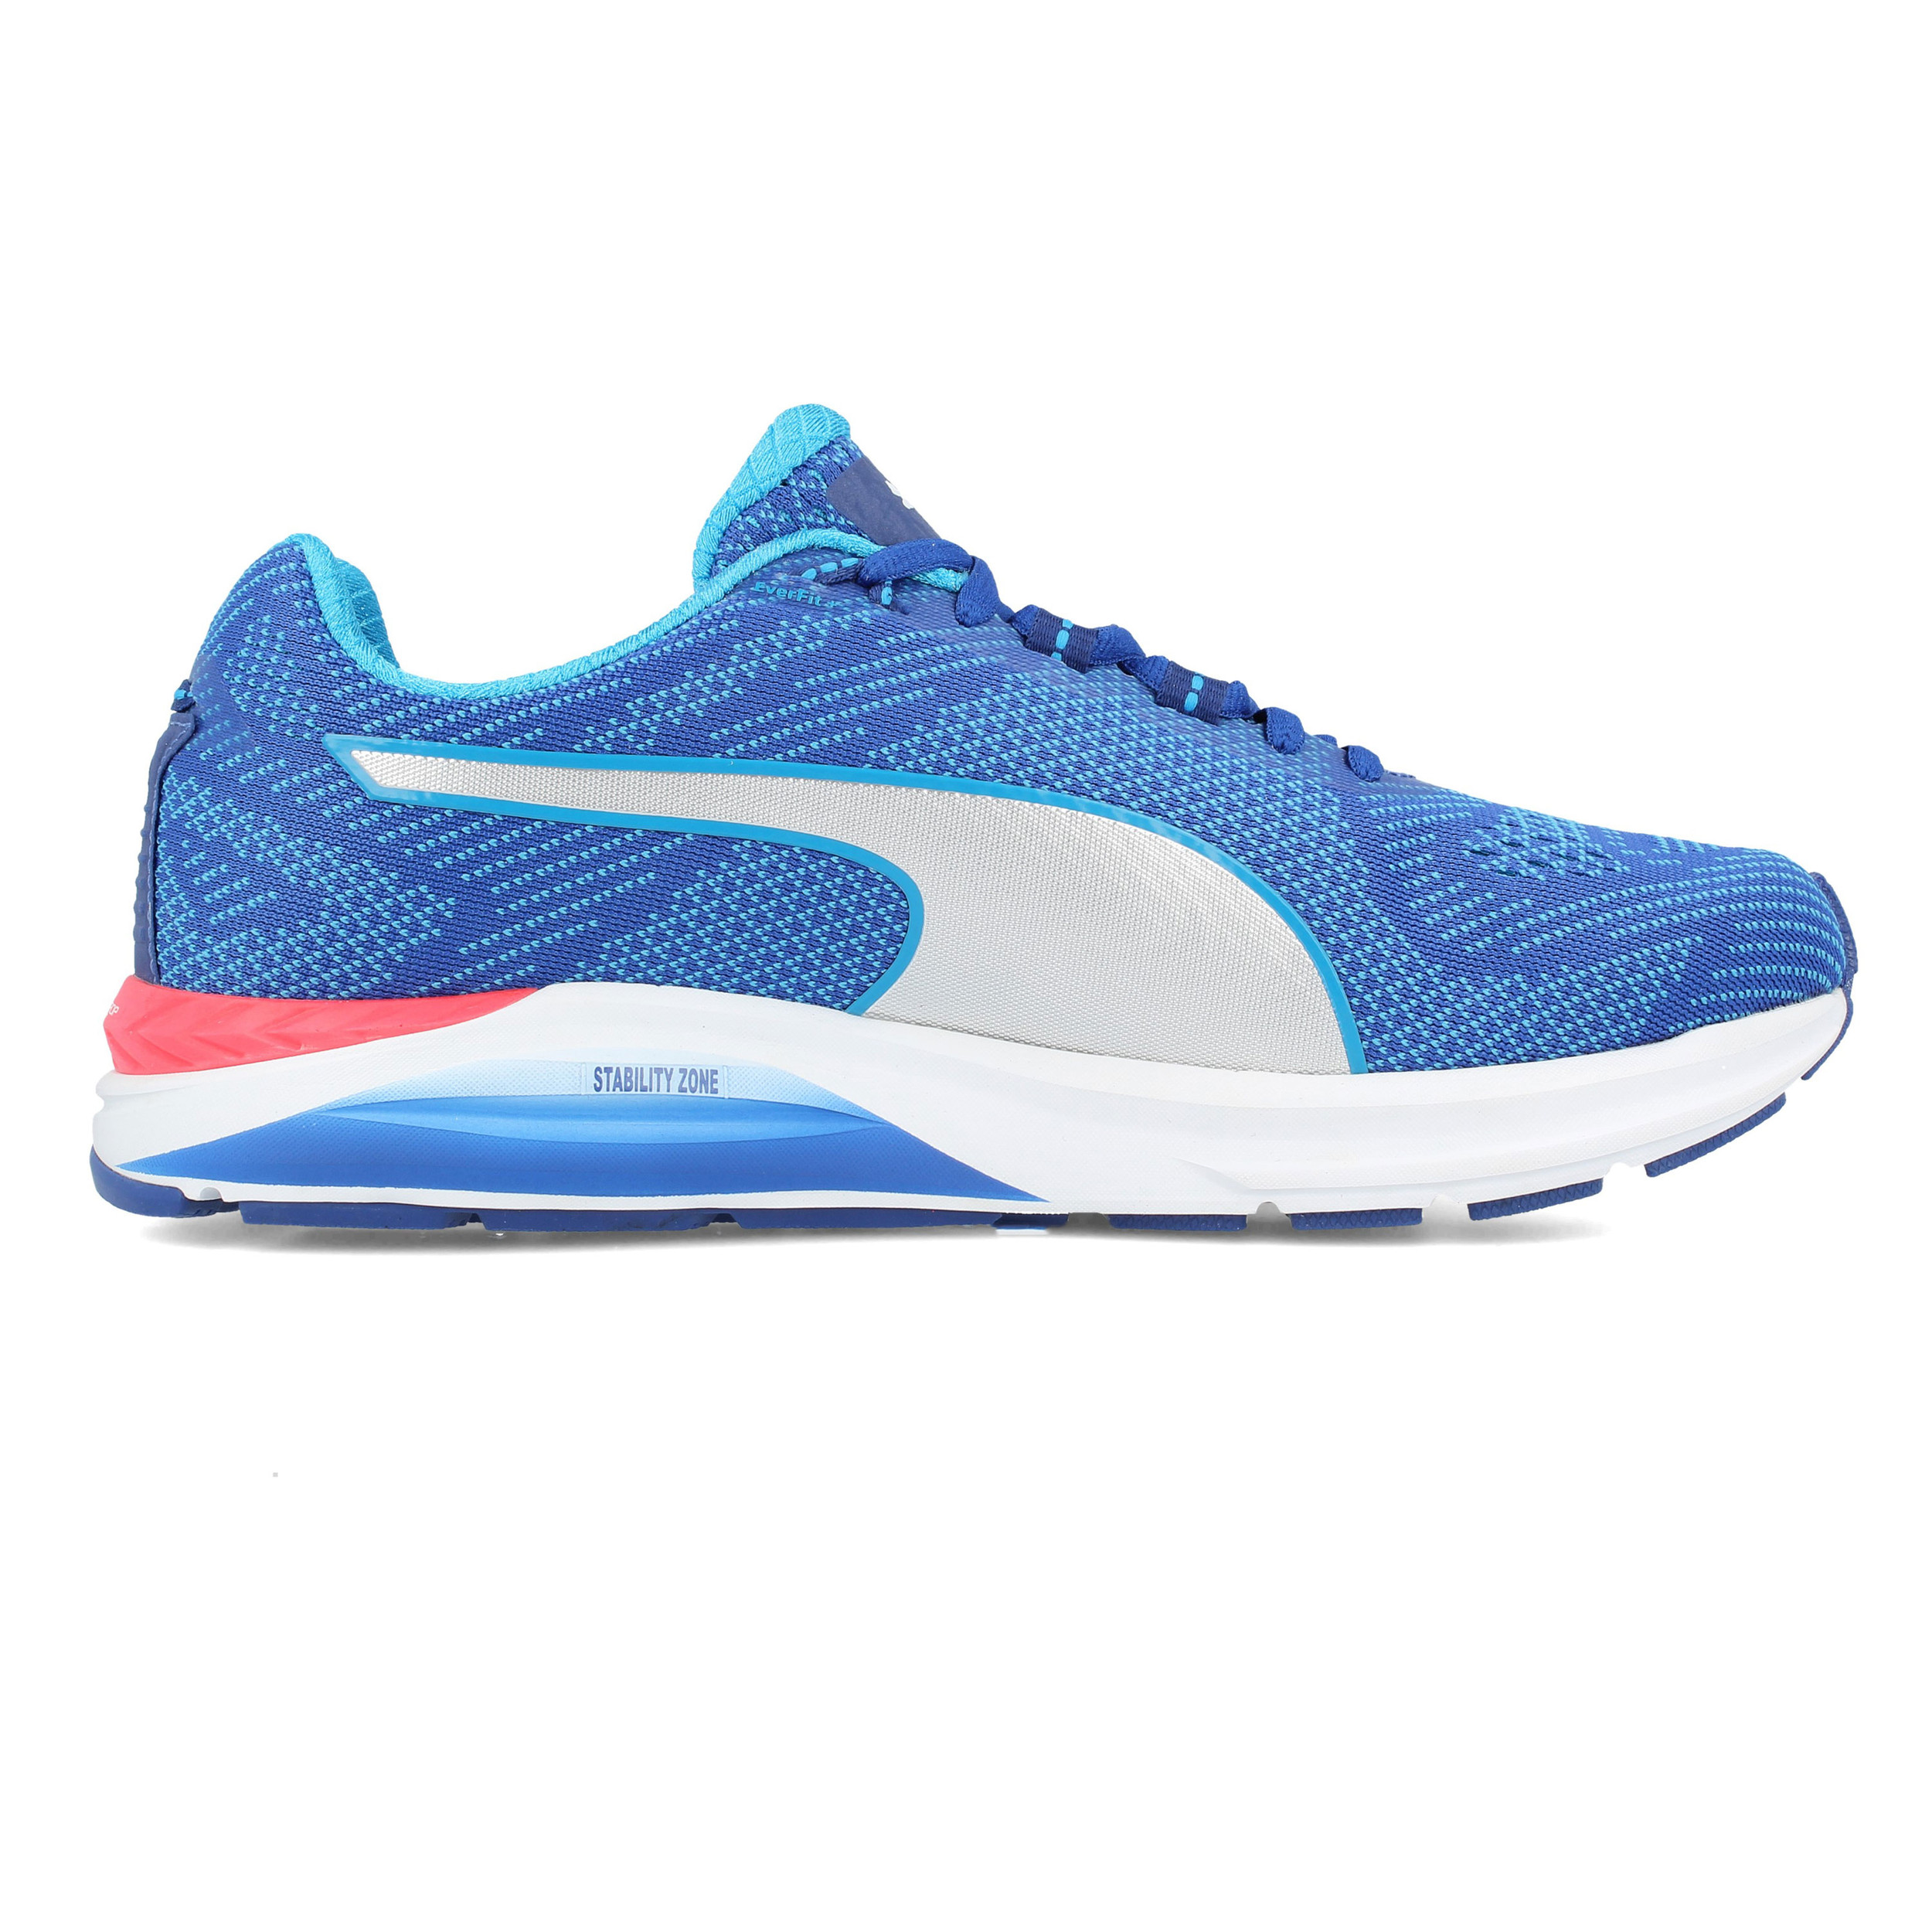 Puma Mens Speed 600 S Ignite Running Shoes Trainers Sneakers Blue Sports f7e2dba6b